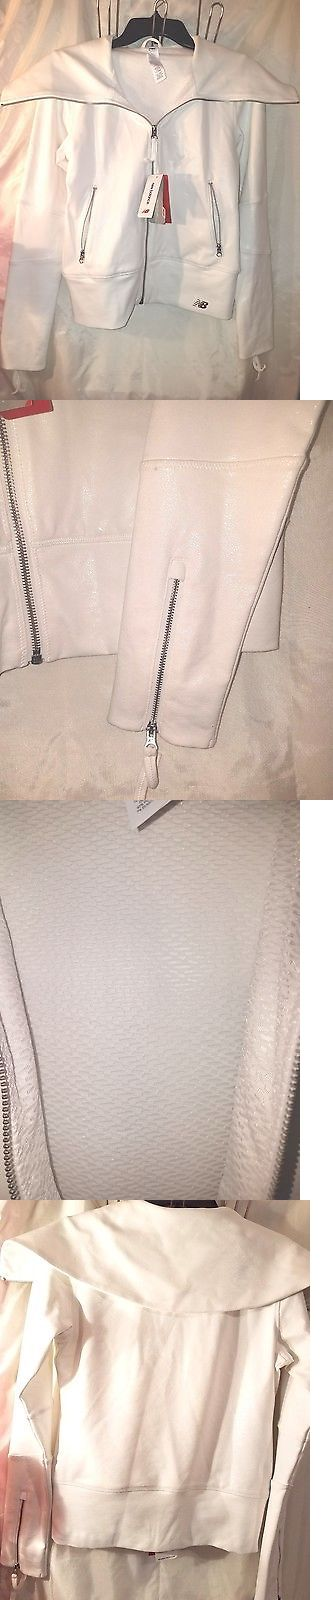 Jackets and Vests 59285: New Balance Womens Shadow Yoga Jacket White Small -> BUY IT NOW ONLY: $75 on eBay!